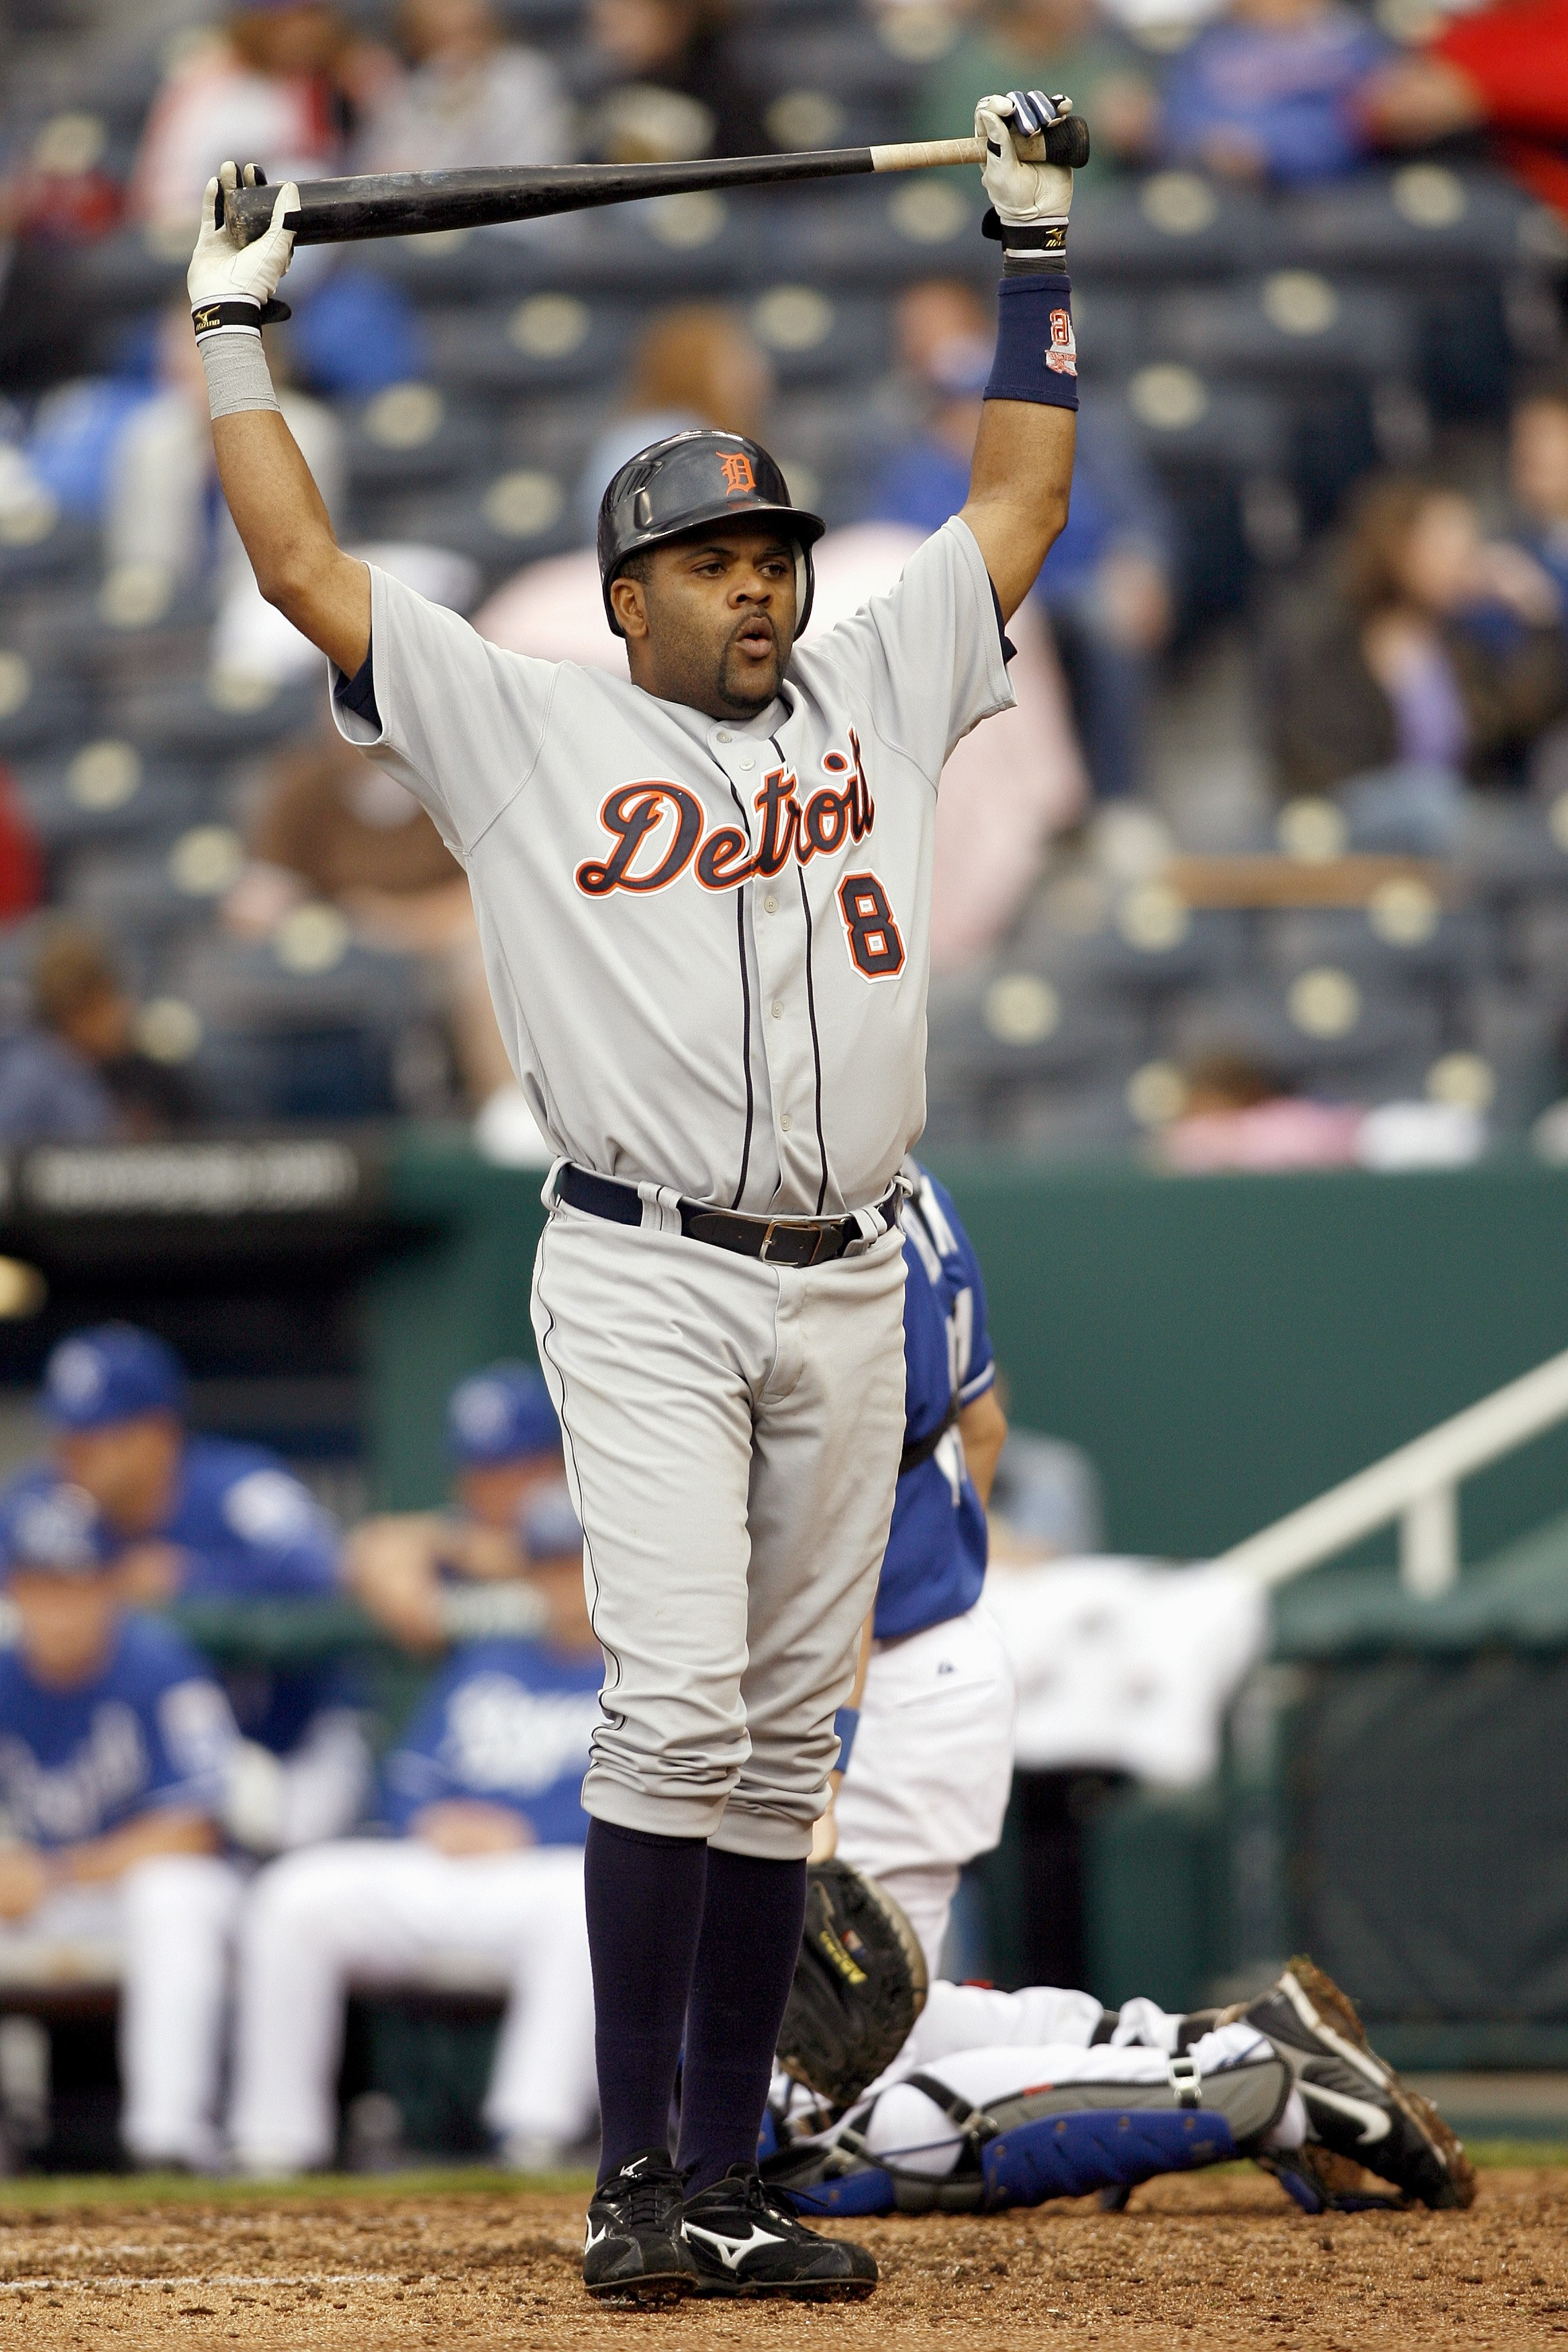 KANSAS CITY, MO - MAY 6: Neifi Perez #8 of the Detroit Tigers reacts to the pitch against the Kansas City Royals on May 6, 2007 at Kauffman Stadium in Kansas City, Missouri.  (Photo by G. Newman Lowrance/Getty Images)